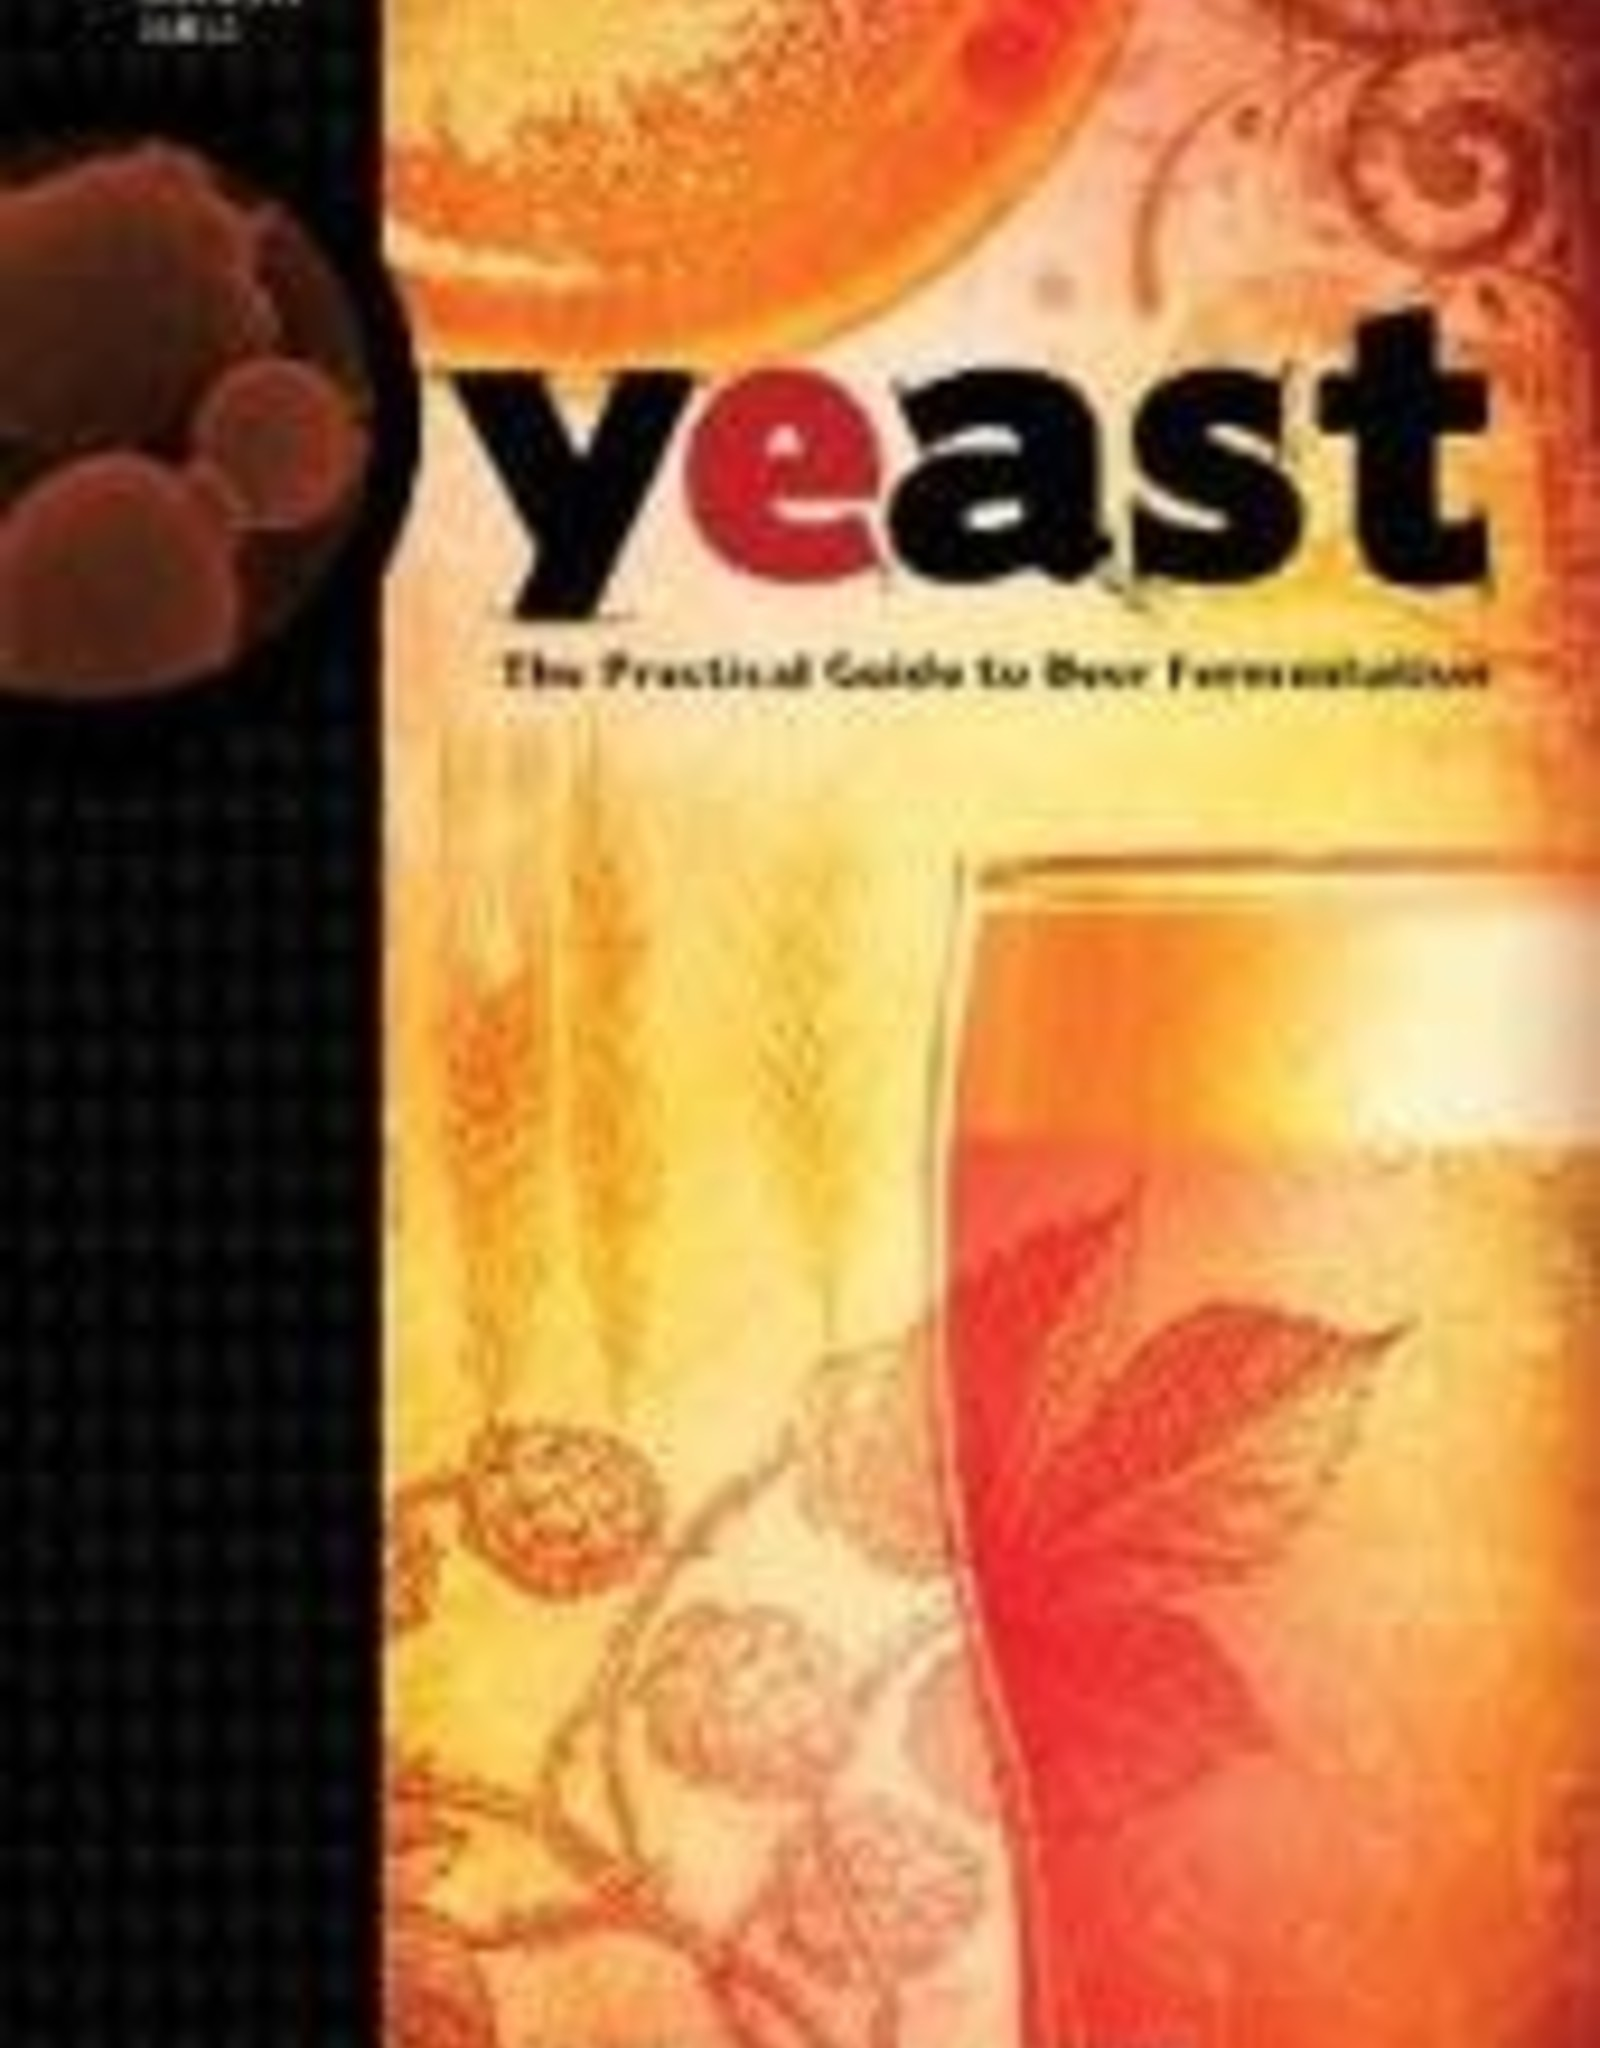 YEAST THE PRACTICAL GUIDE